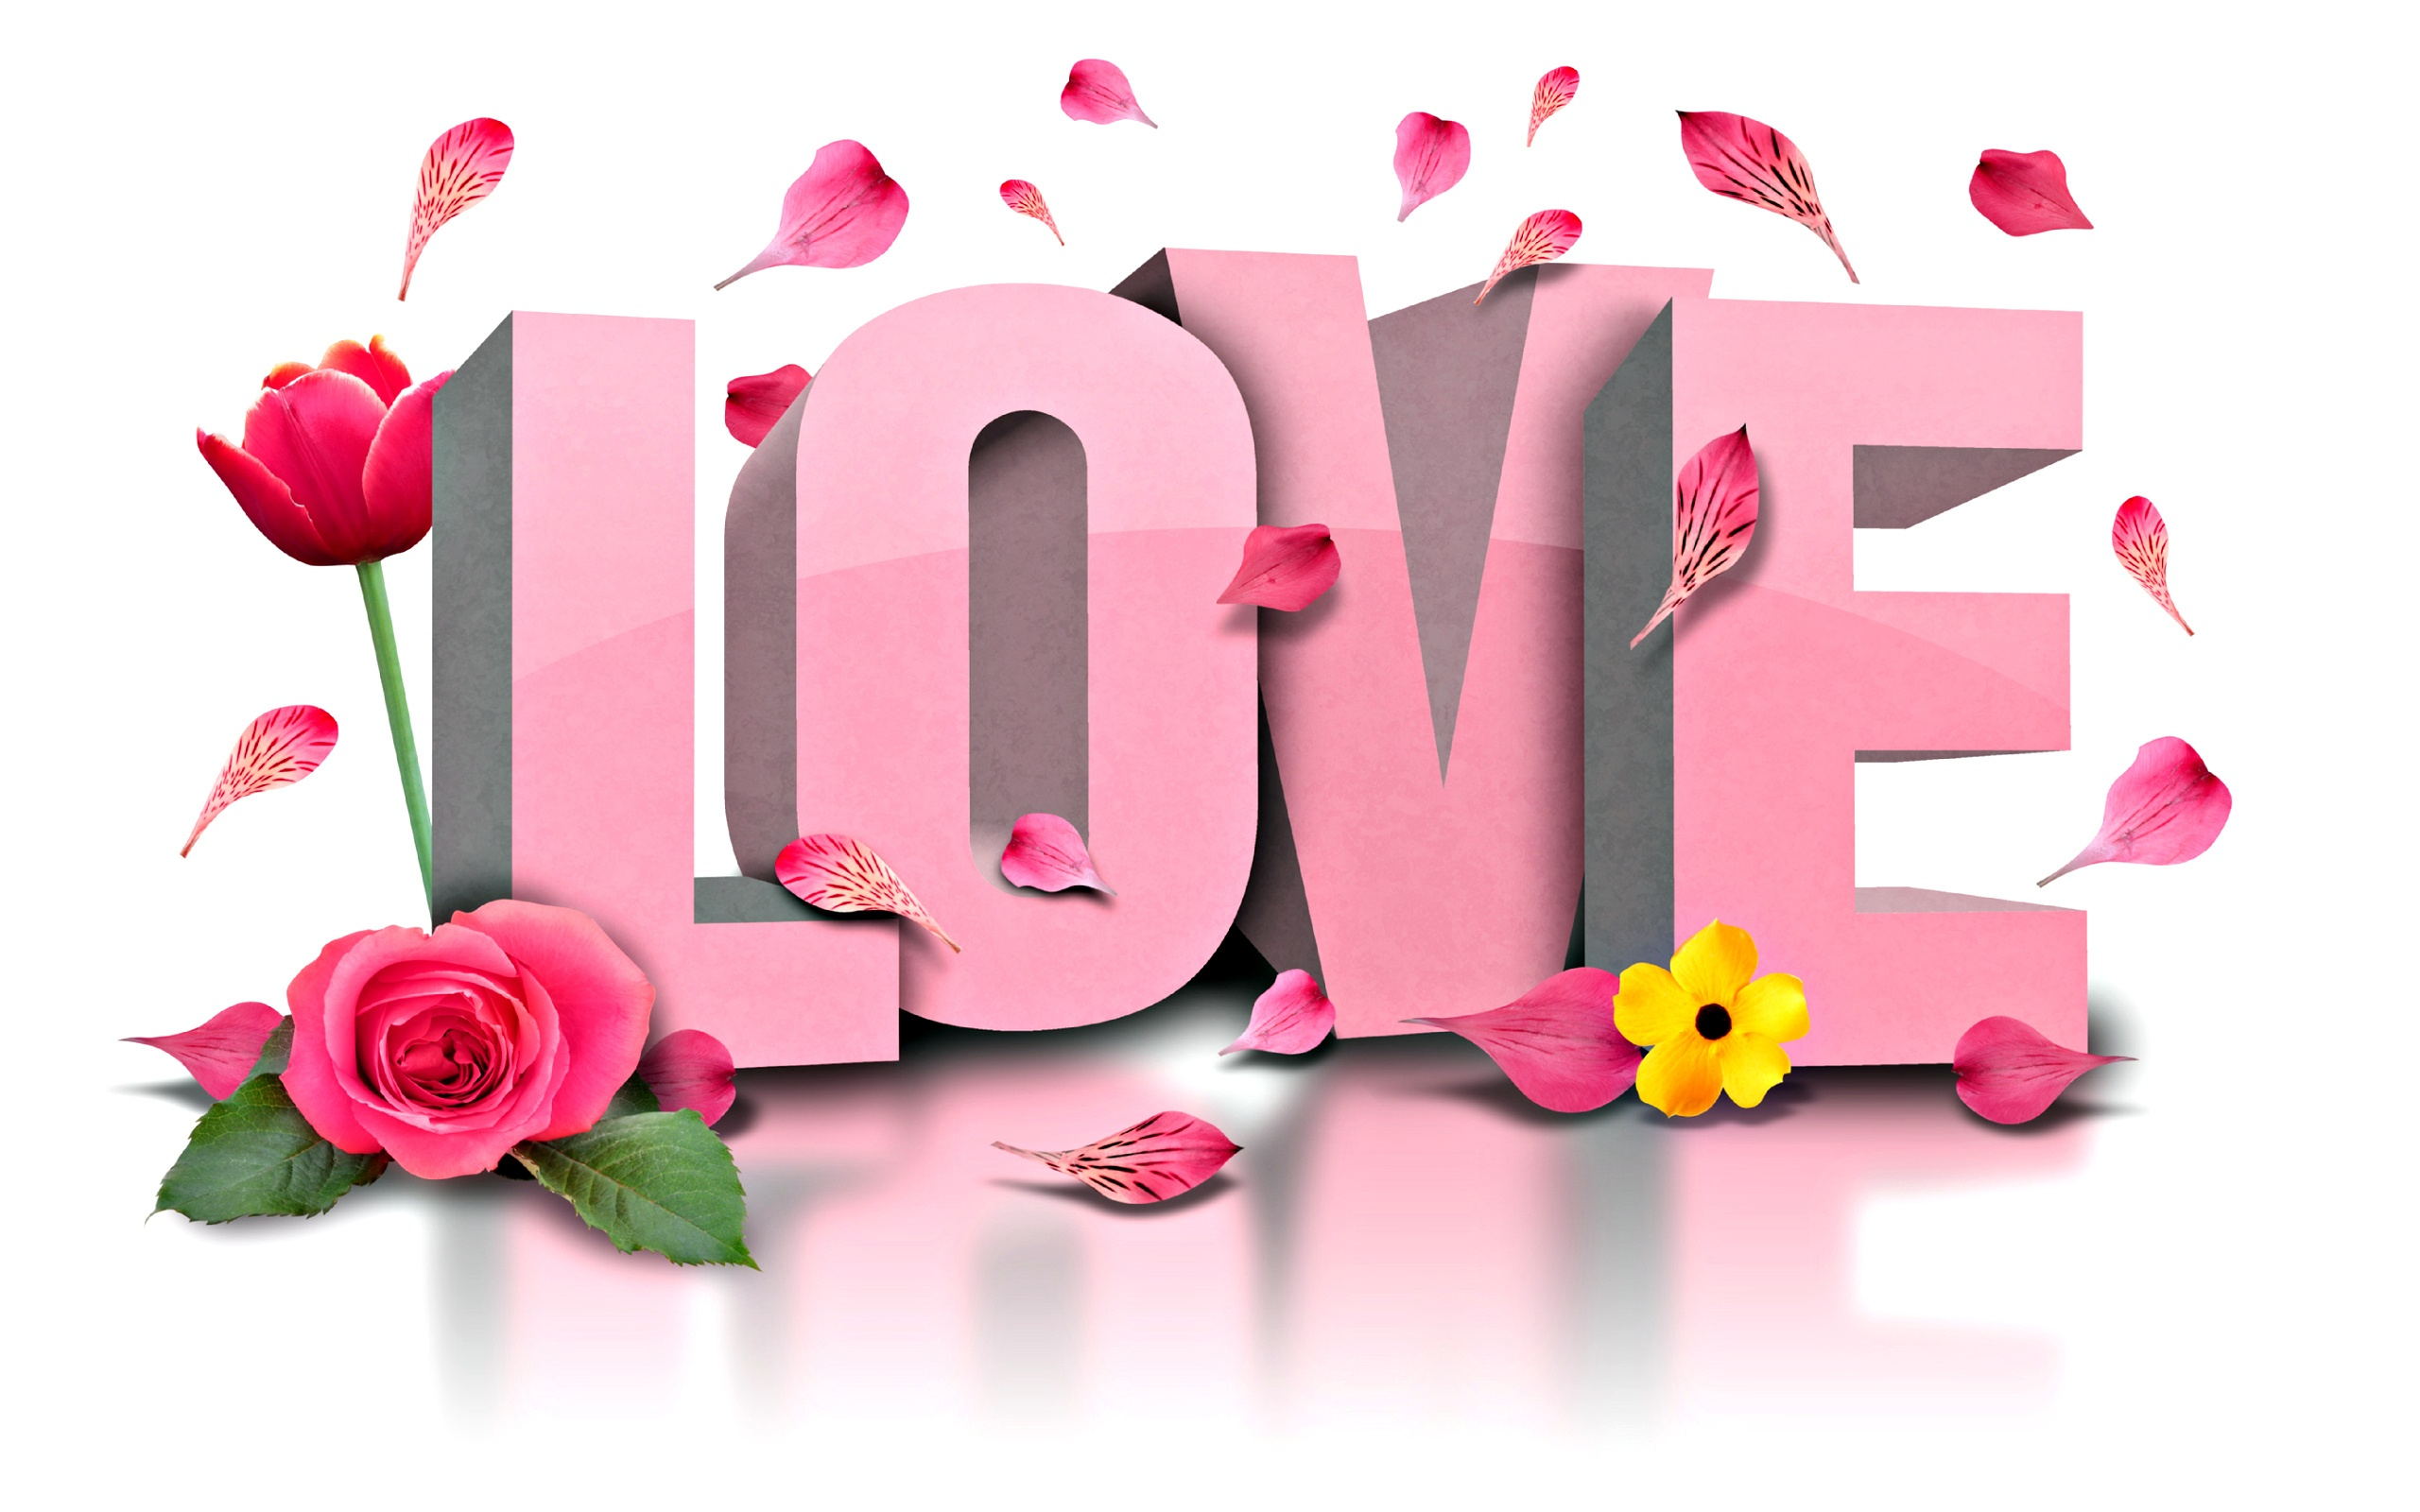 Love Flowers Wallpapers 2560x1600 577941